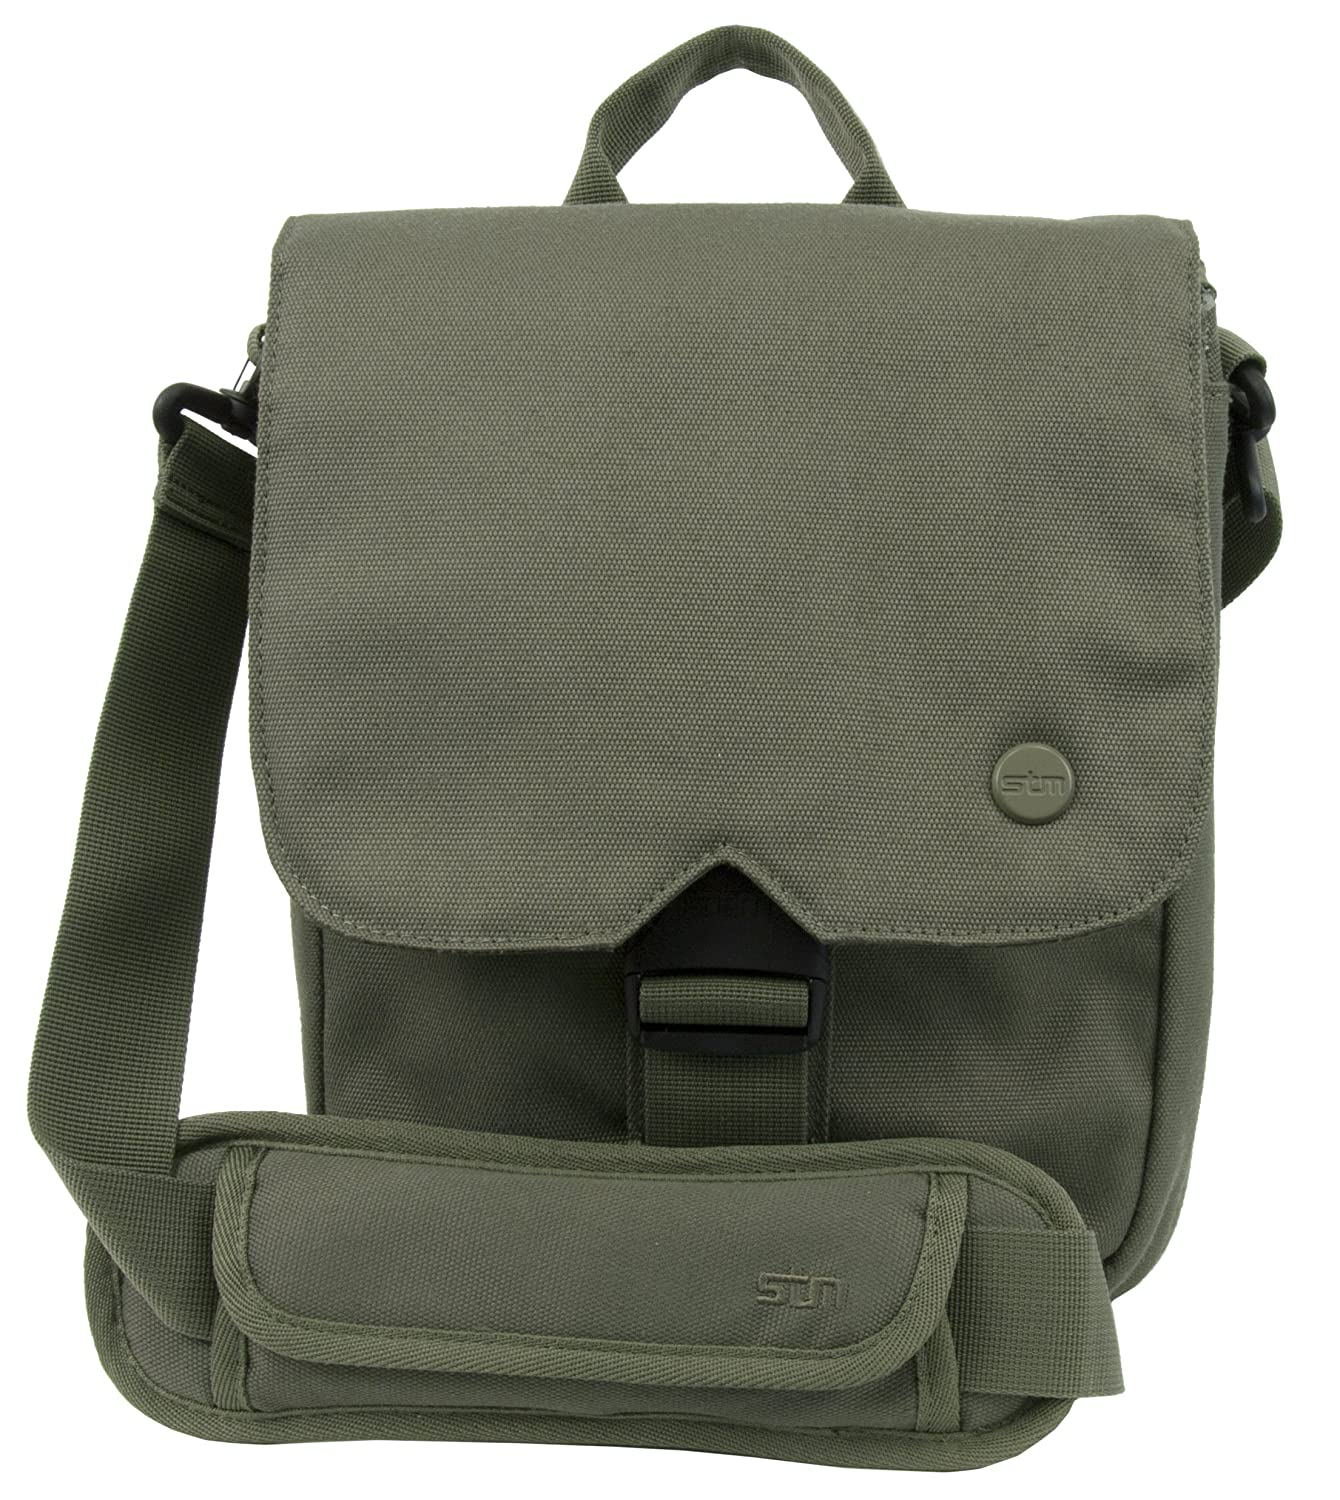 Shoulder Bag To Carry Ipad 34